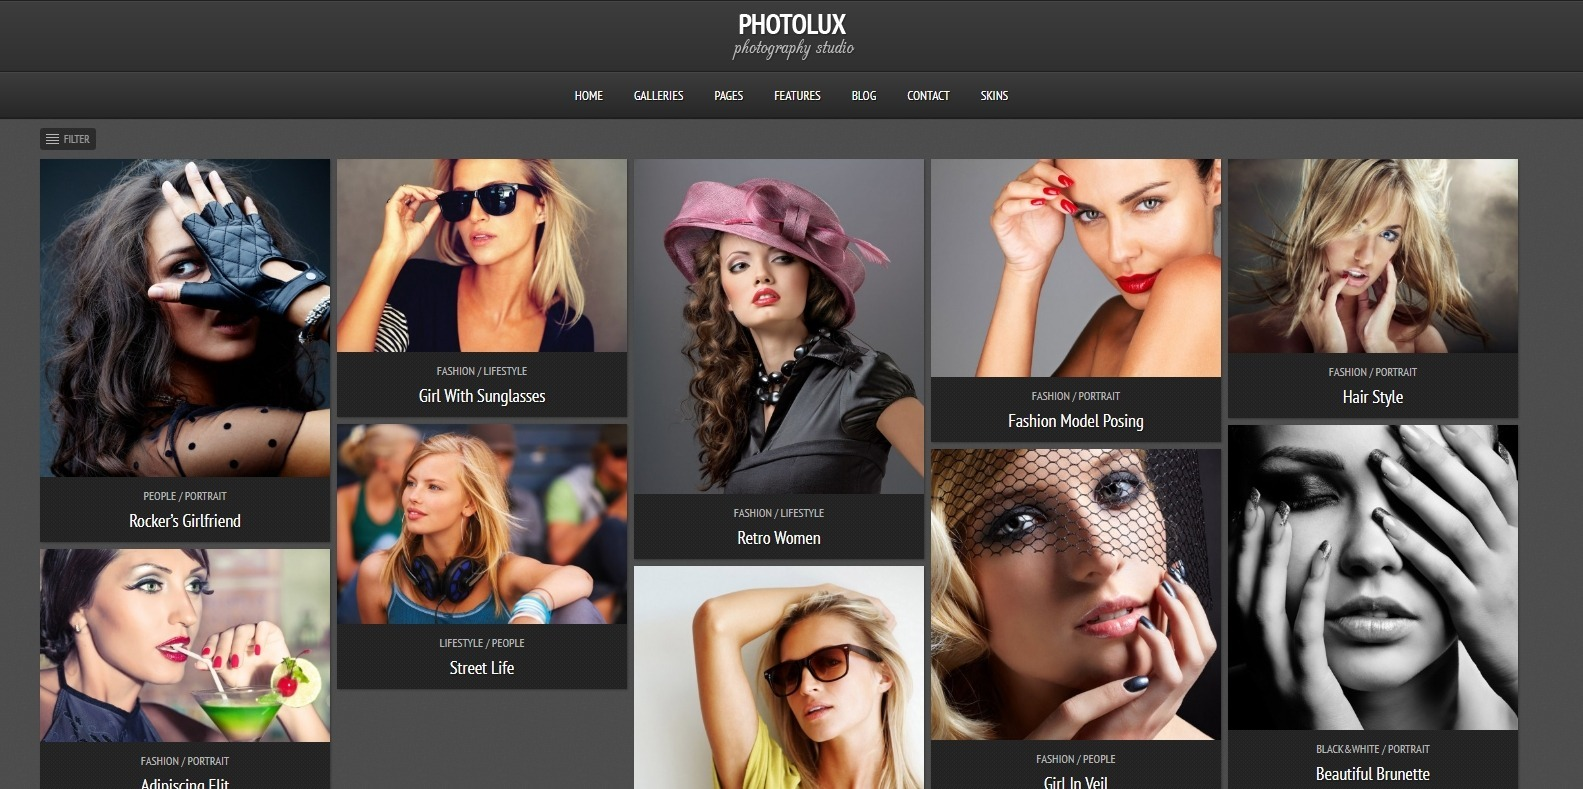 photolux-gallery-website-template